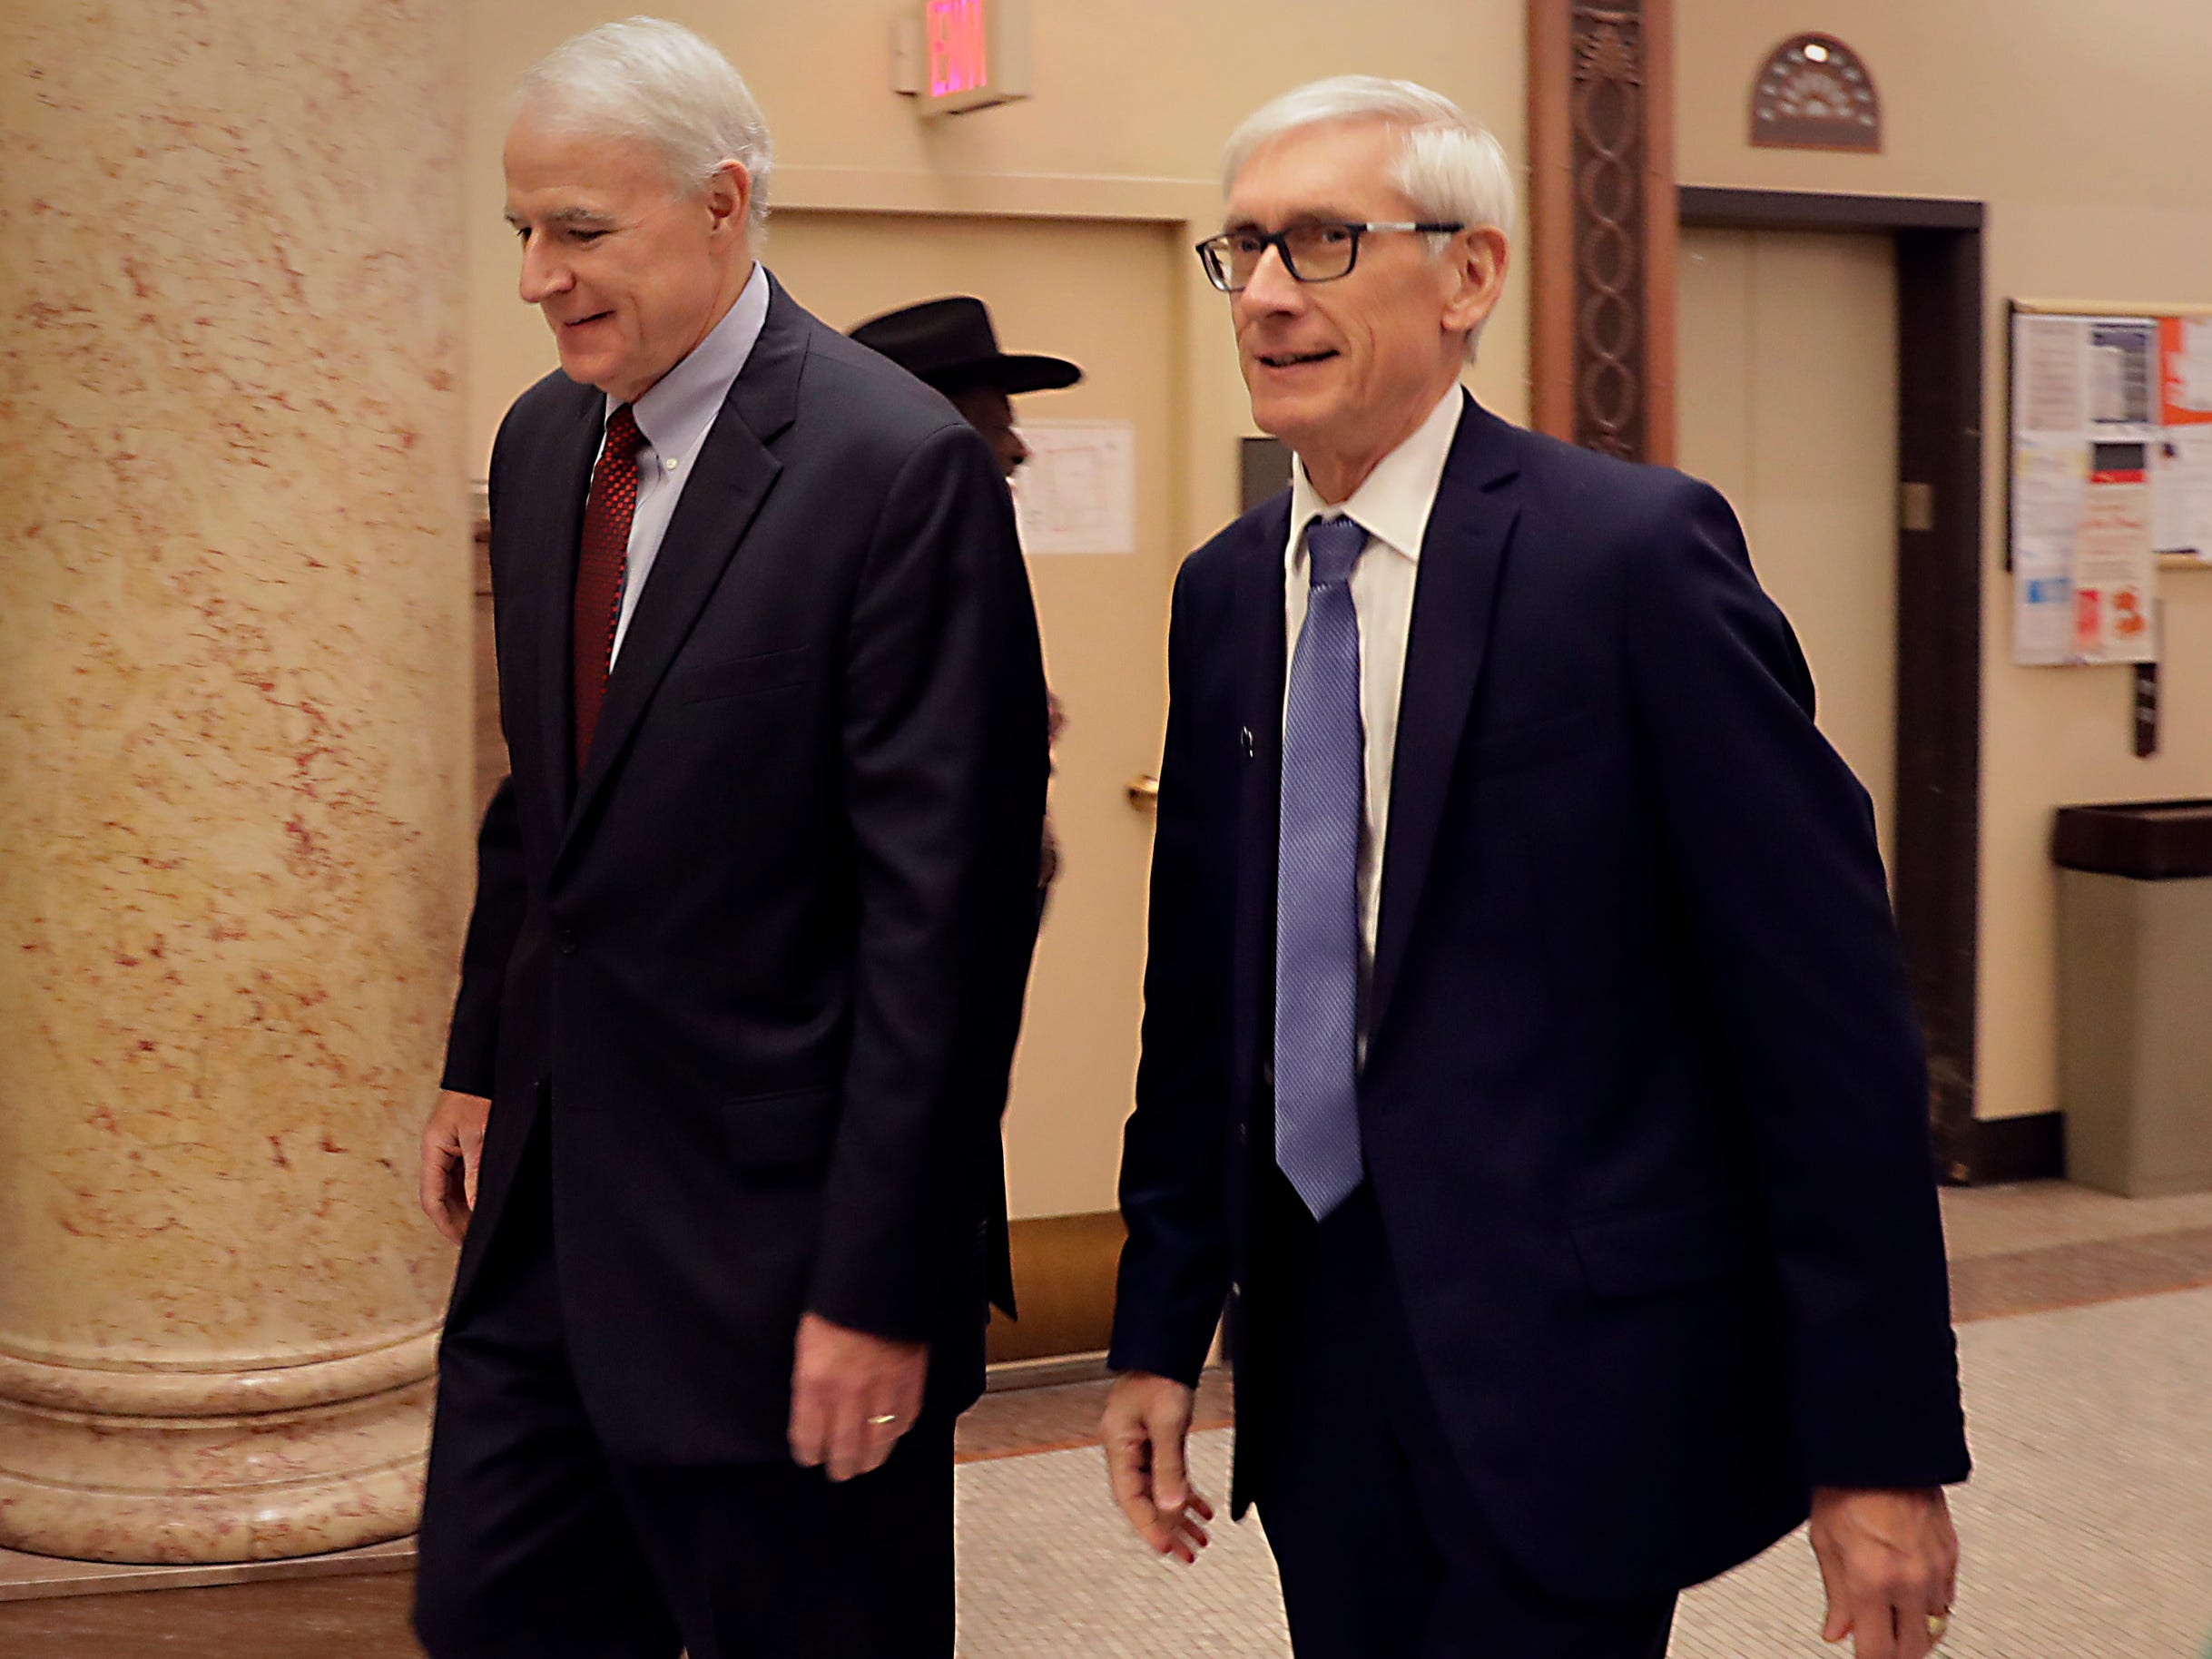 Mayor Tom Barrett (left) welcomes Gov.elect Tony Evers to City Hall on Tuesday.  Evers said he wants to continue working  with Barrett and the Common Council to benefit Milwaukee.